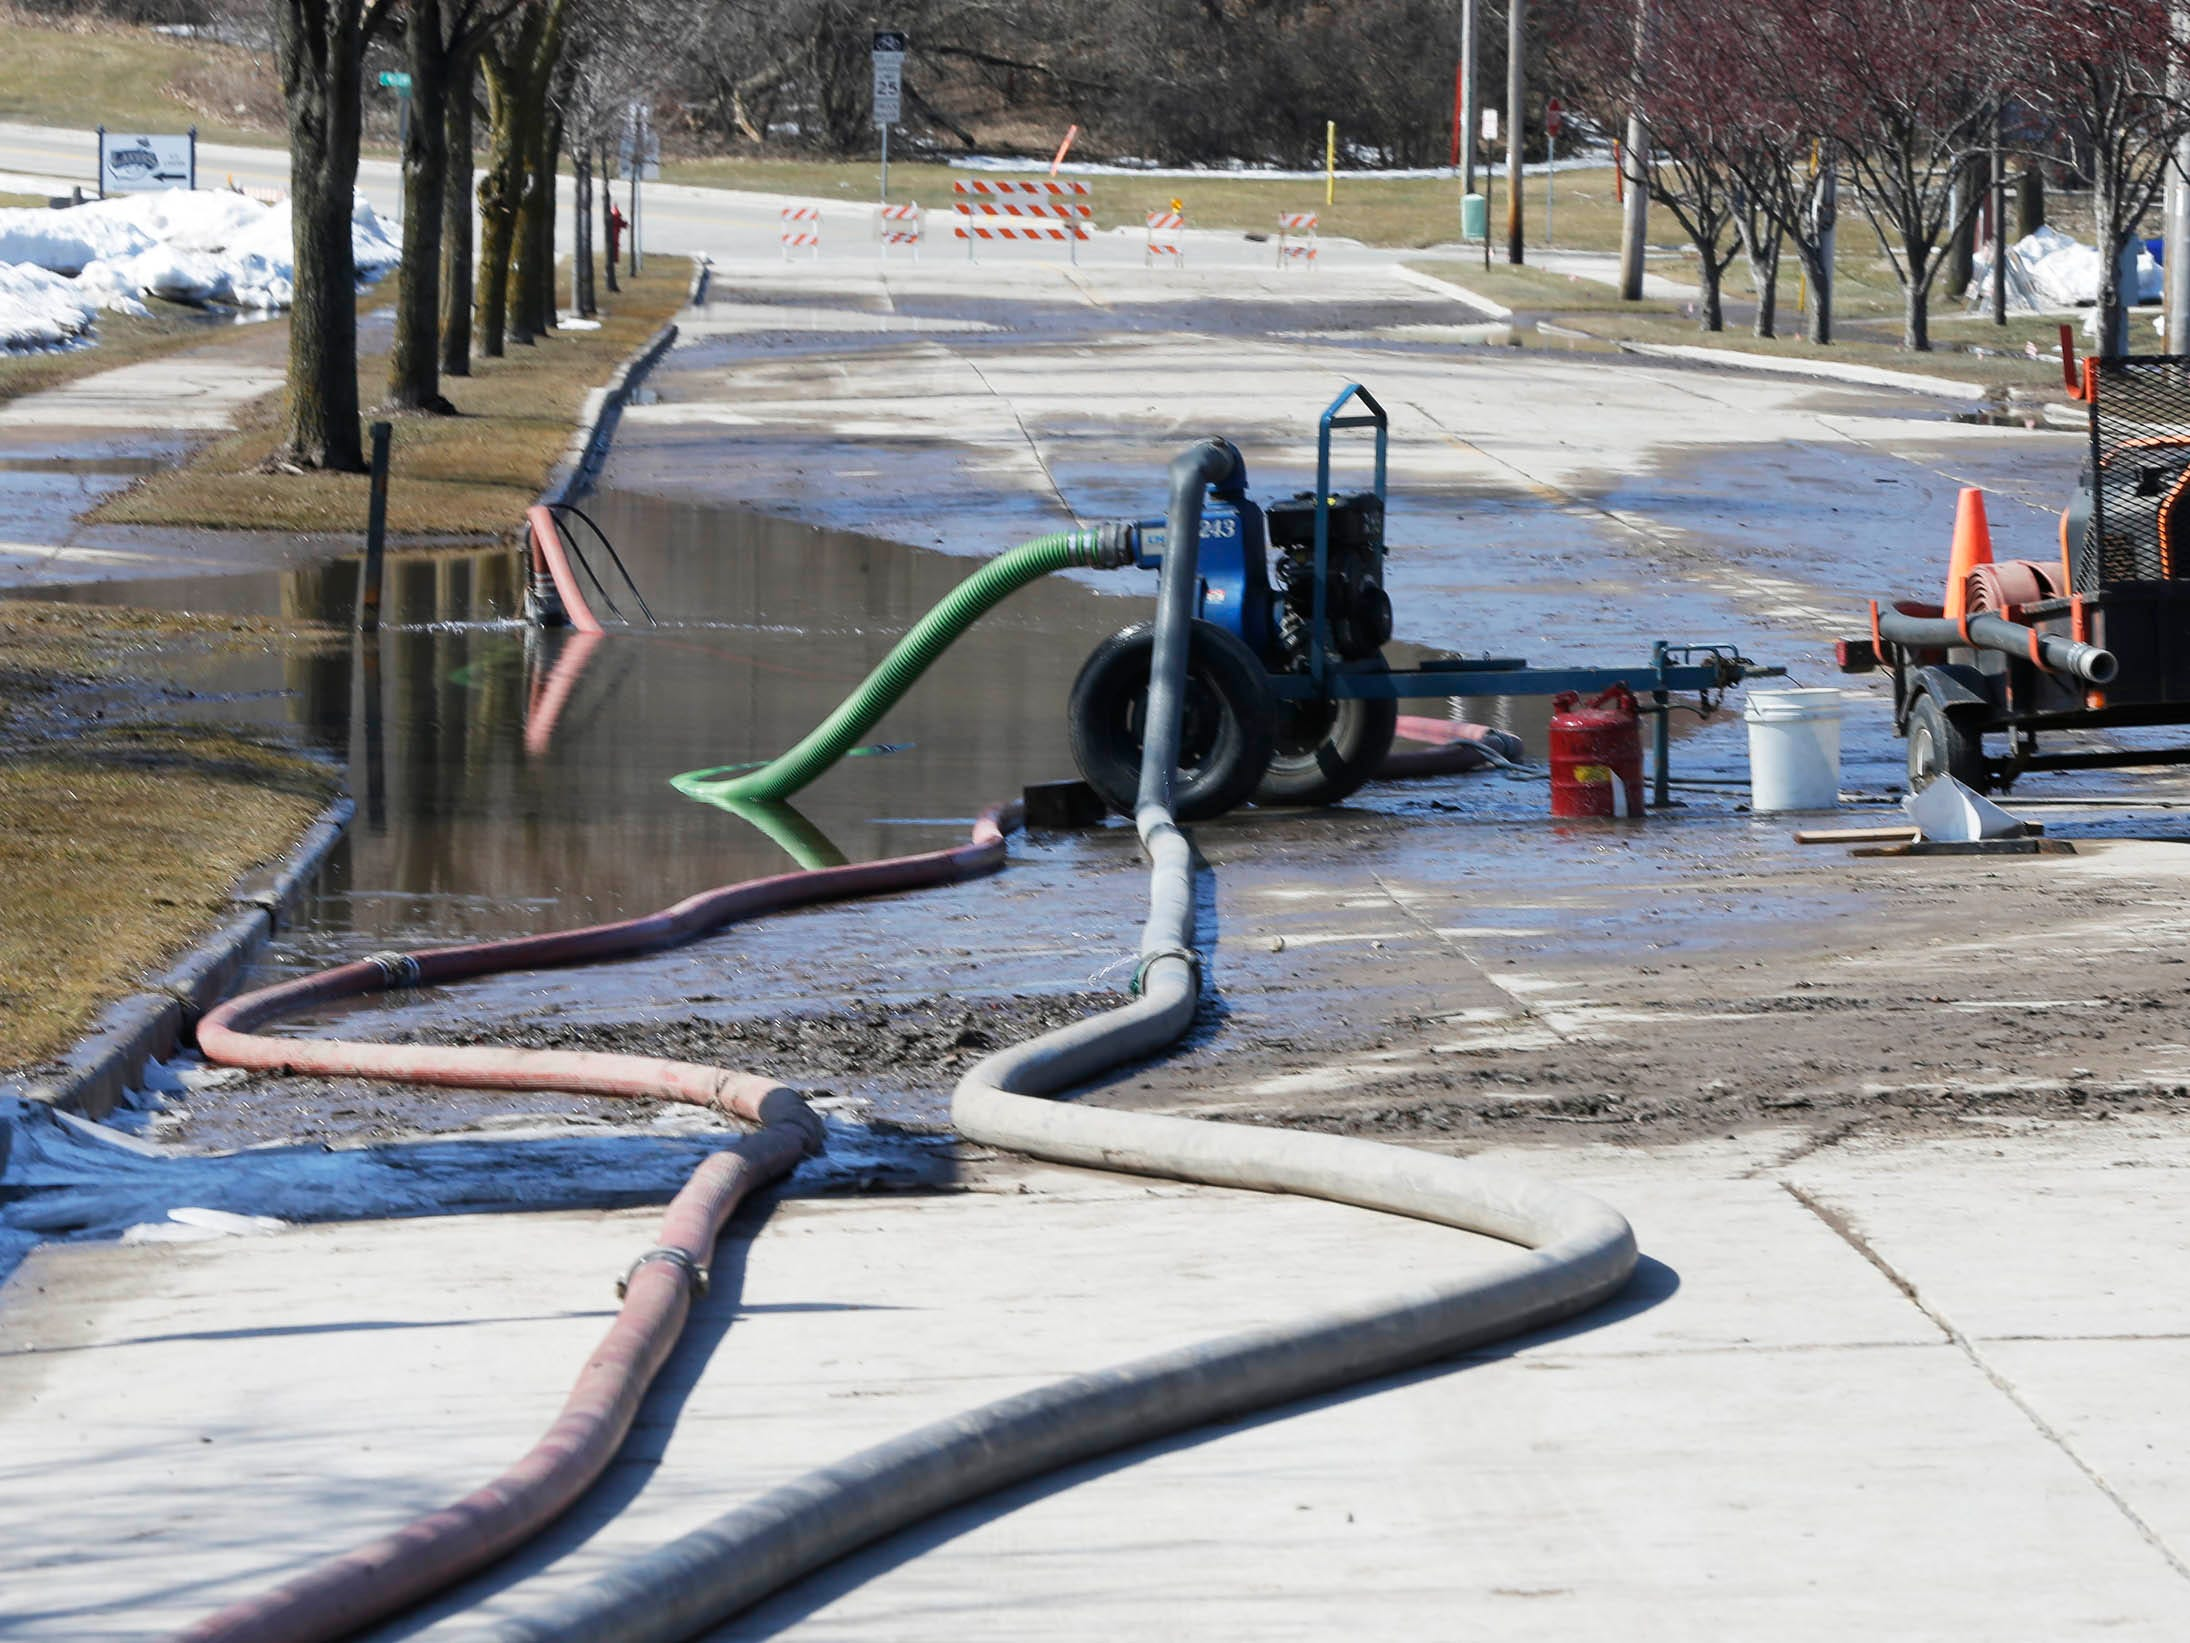 Two pumps work to move the water that is flooding New Jersey Avenue, Tuesday, March 19, 2019, in Sheboygan, Wis.